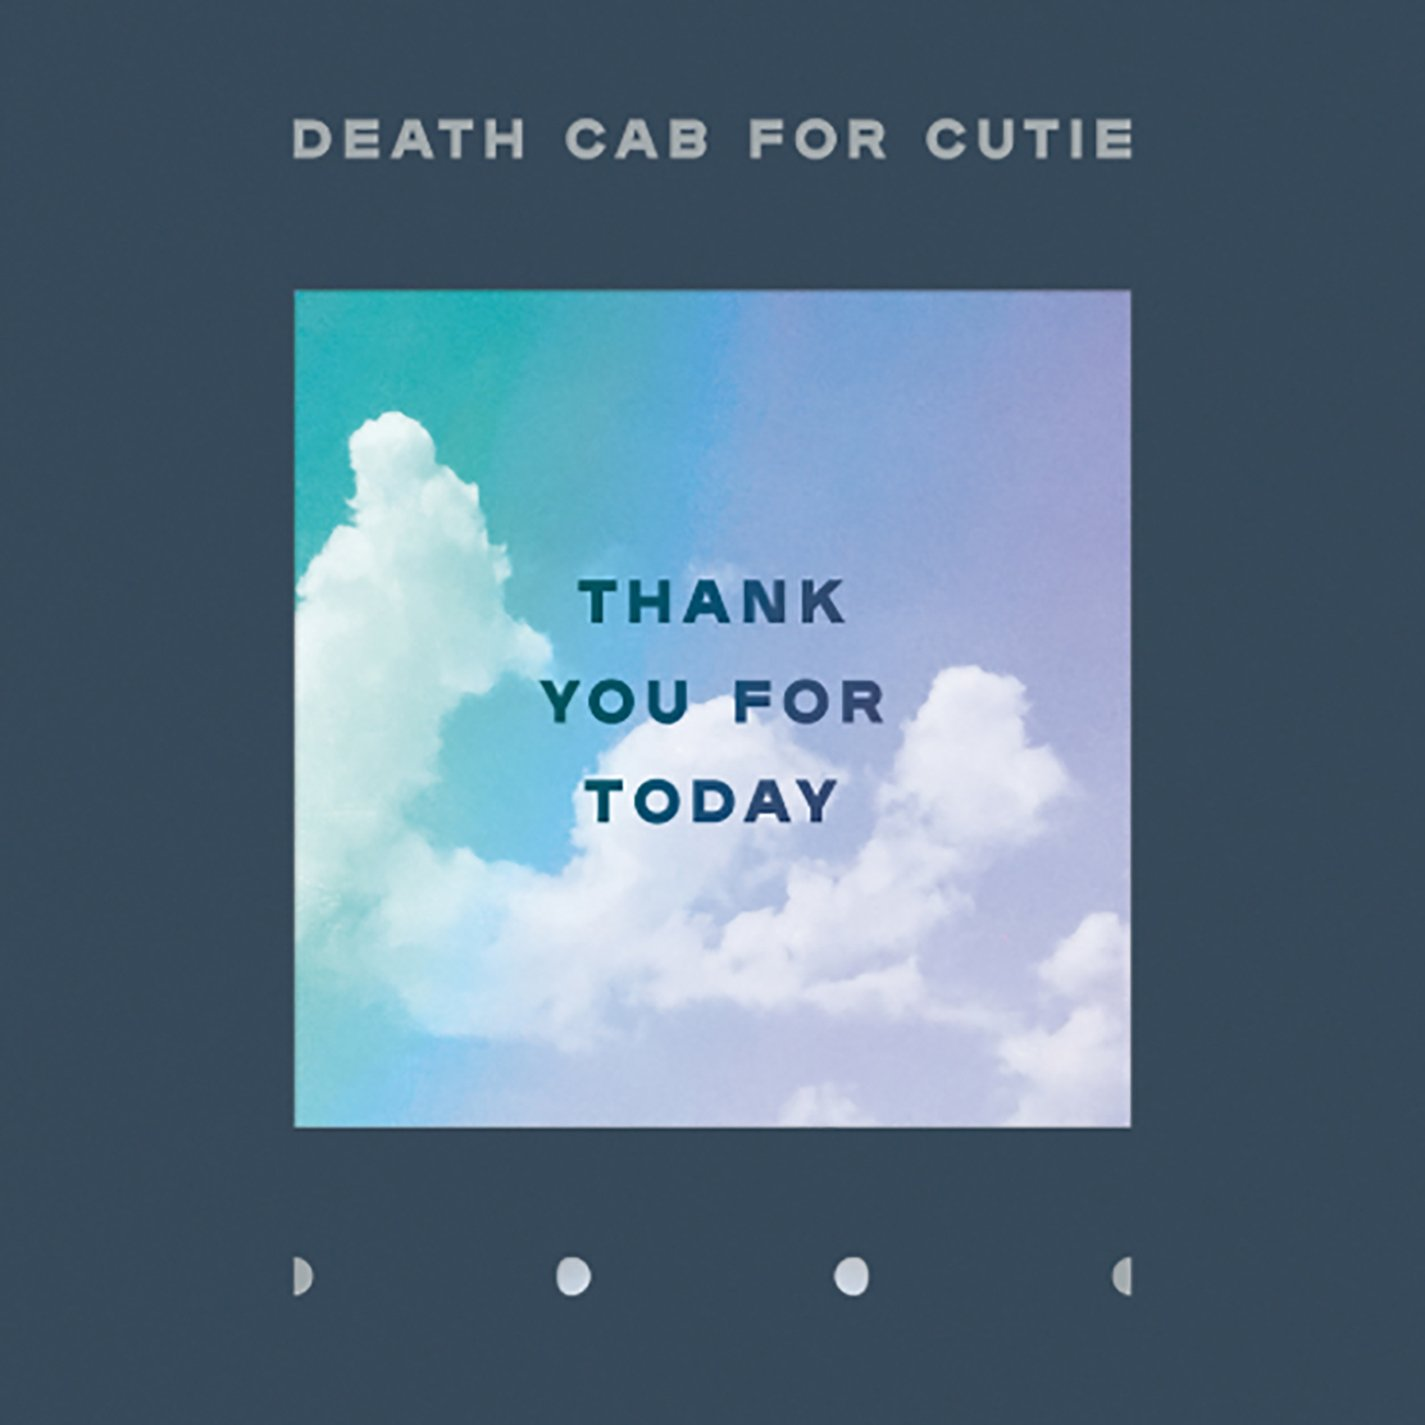 Cassette : Death Cab for Cutie - Thank You For Today (Cassette)